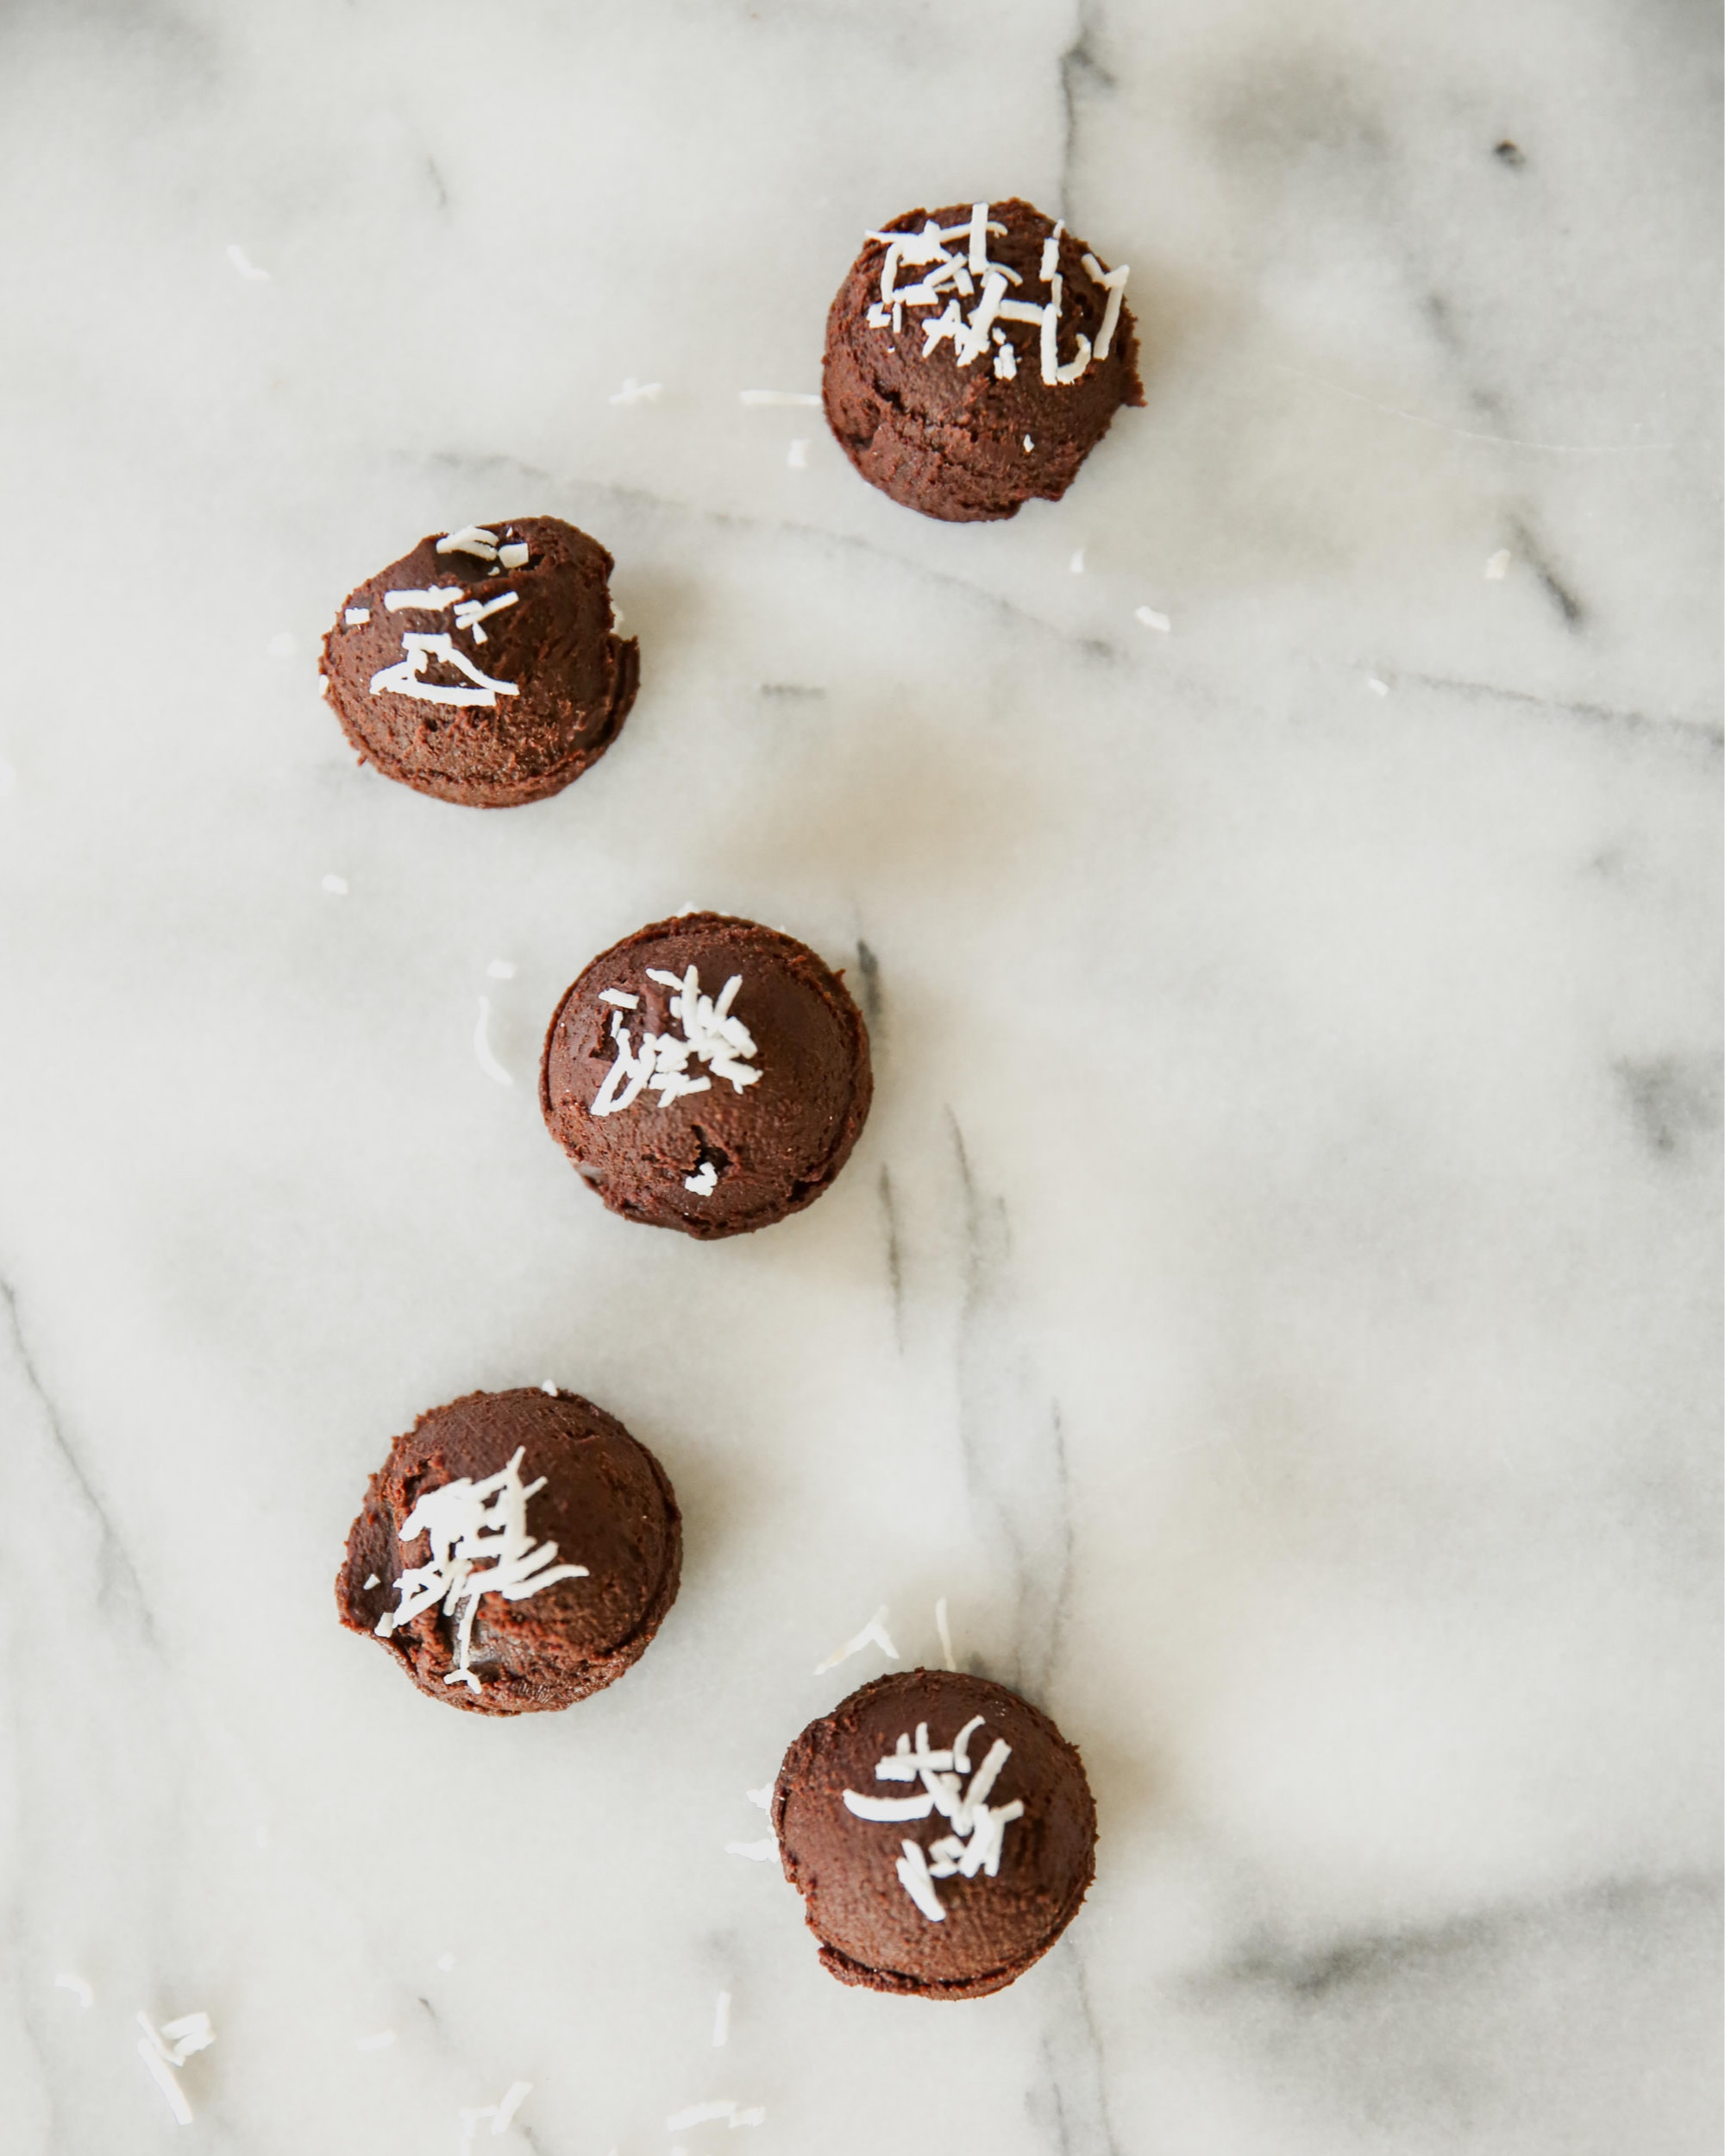 Scattered Authentic Chocolate Truffles